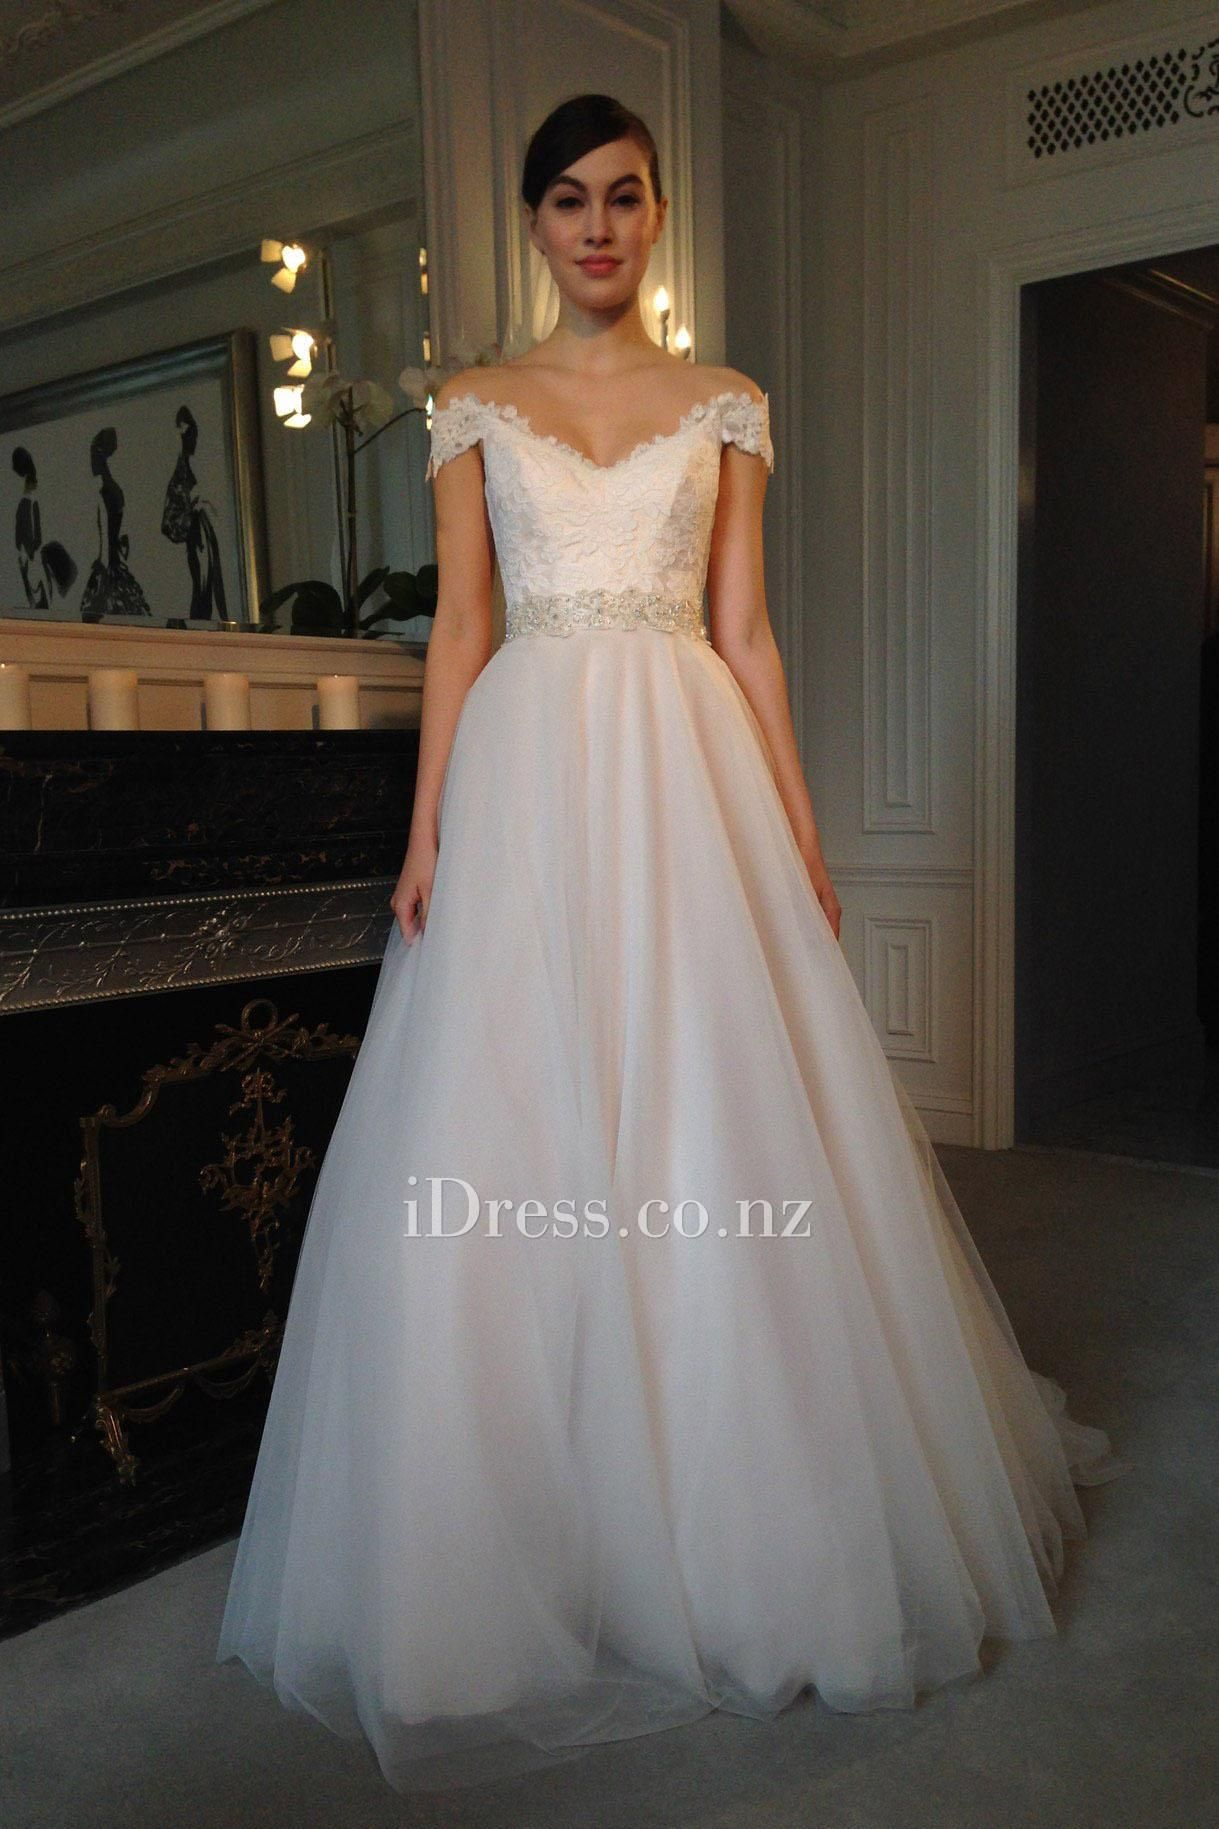 Princess Ivory Lace And Tulle Cap Sleeve Wedding Gown Wedding Gowns With Sleeves A Line Wedding Dress Wedding Gowns Lace